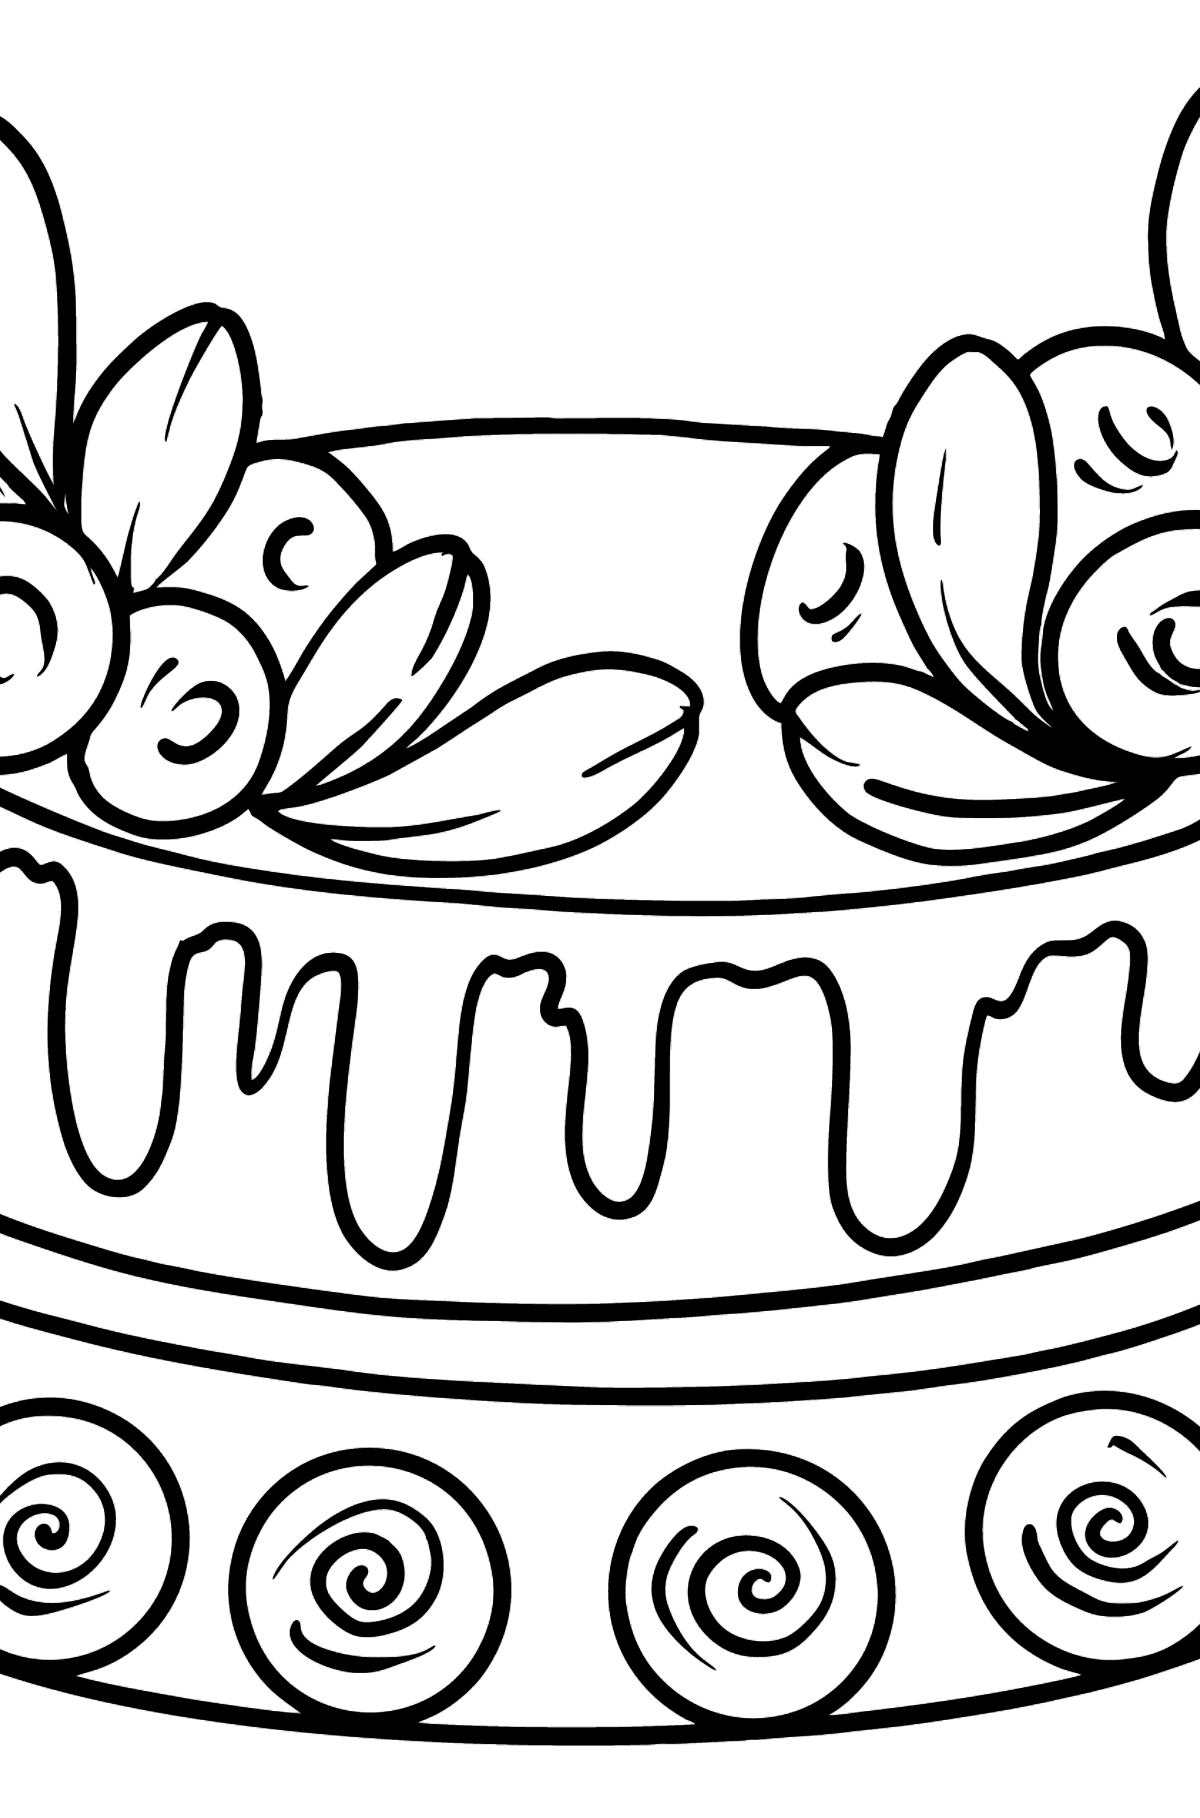 Coloring page - Cake with icing - Coloring Pages for Kids